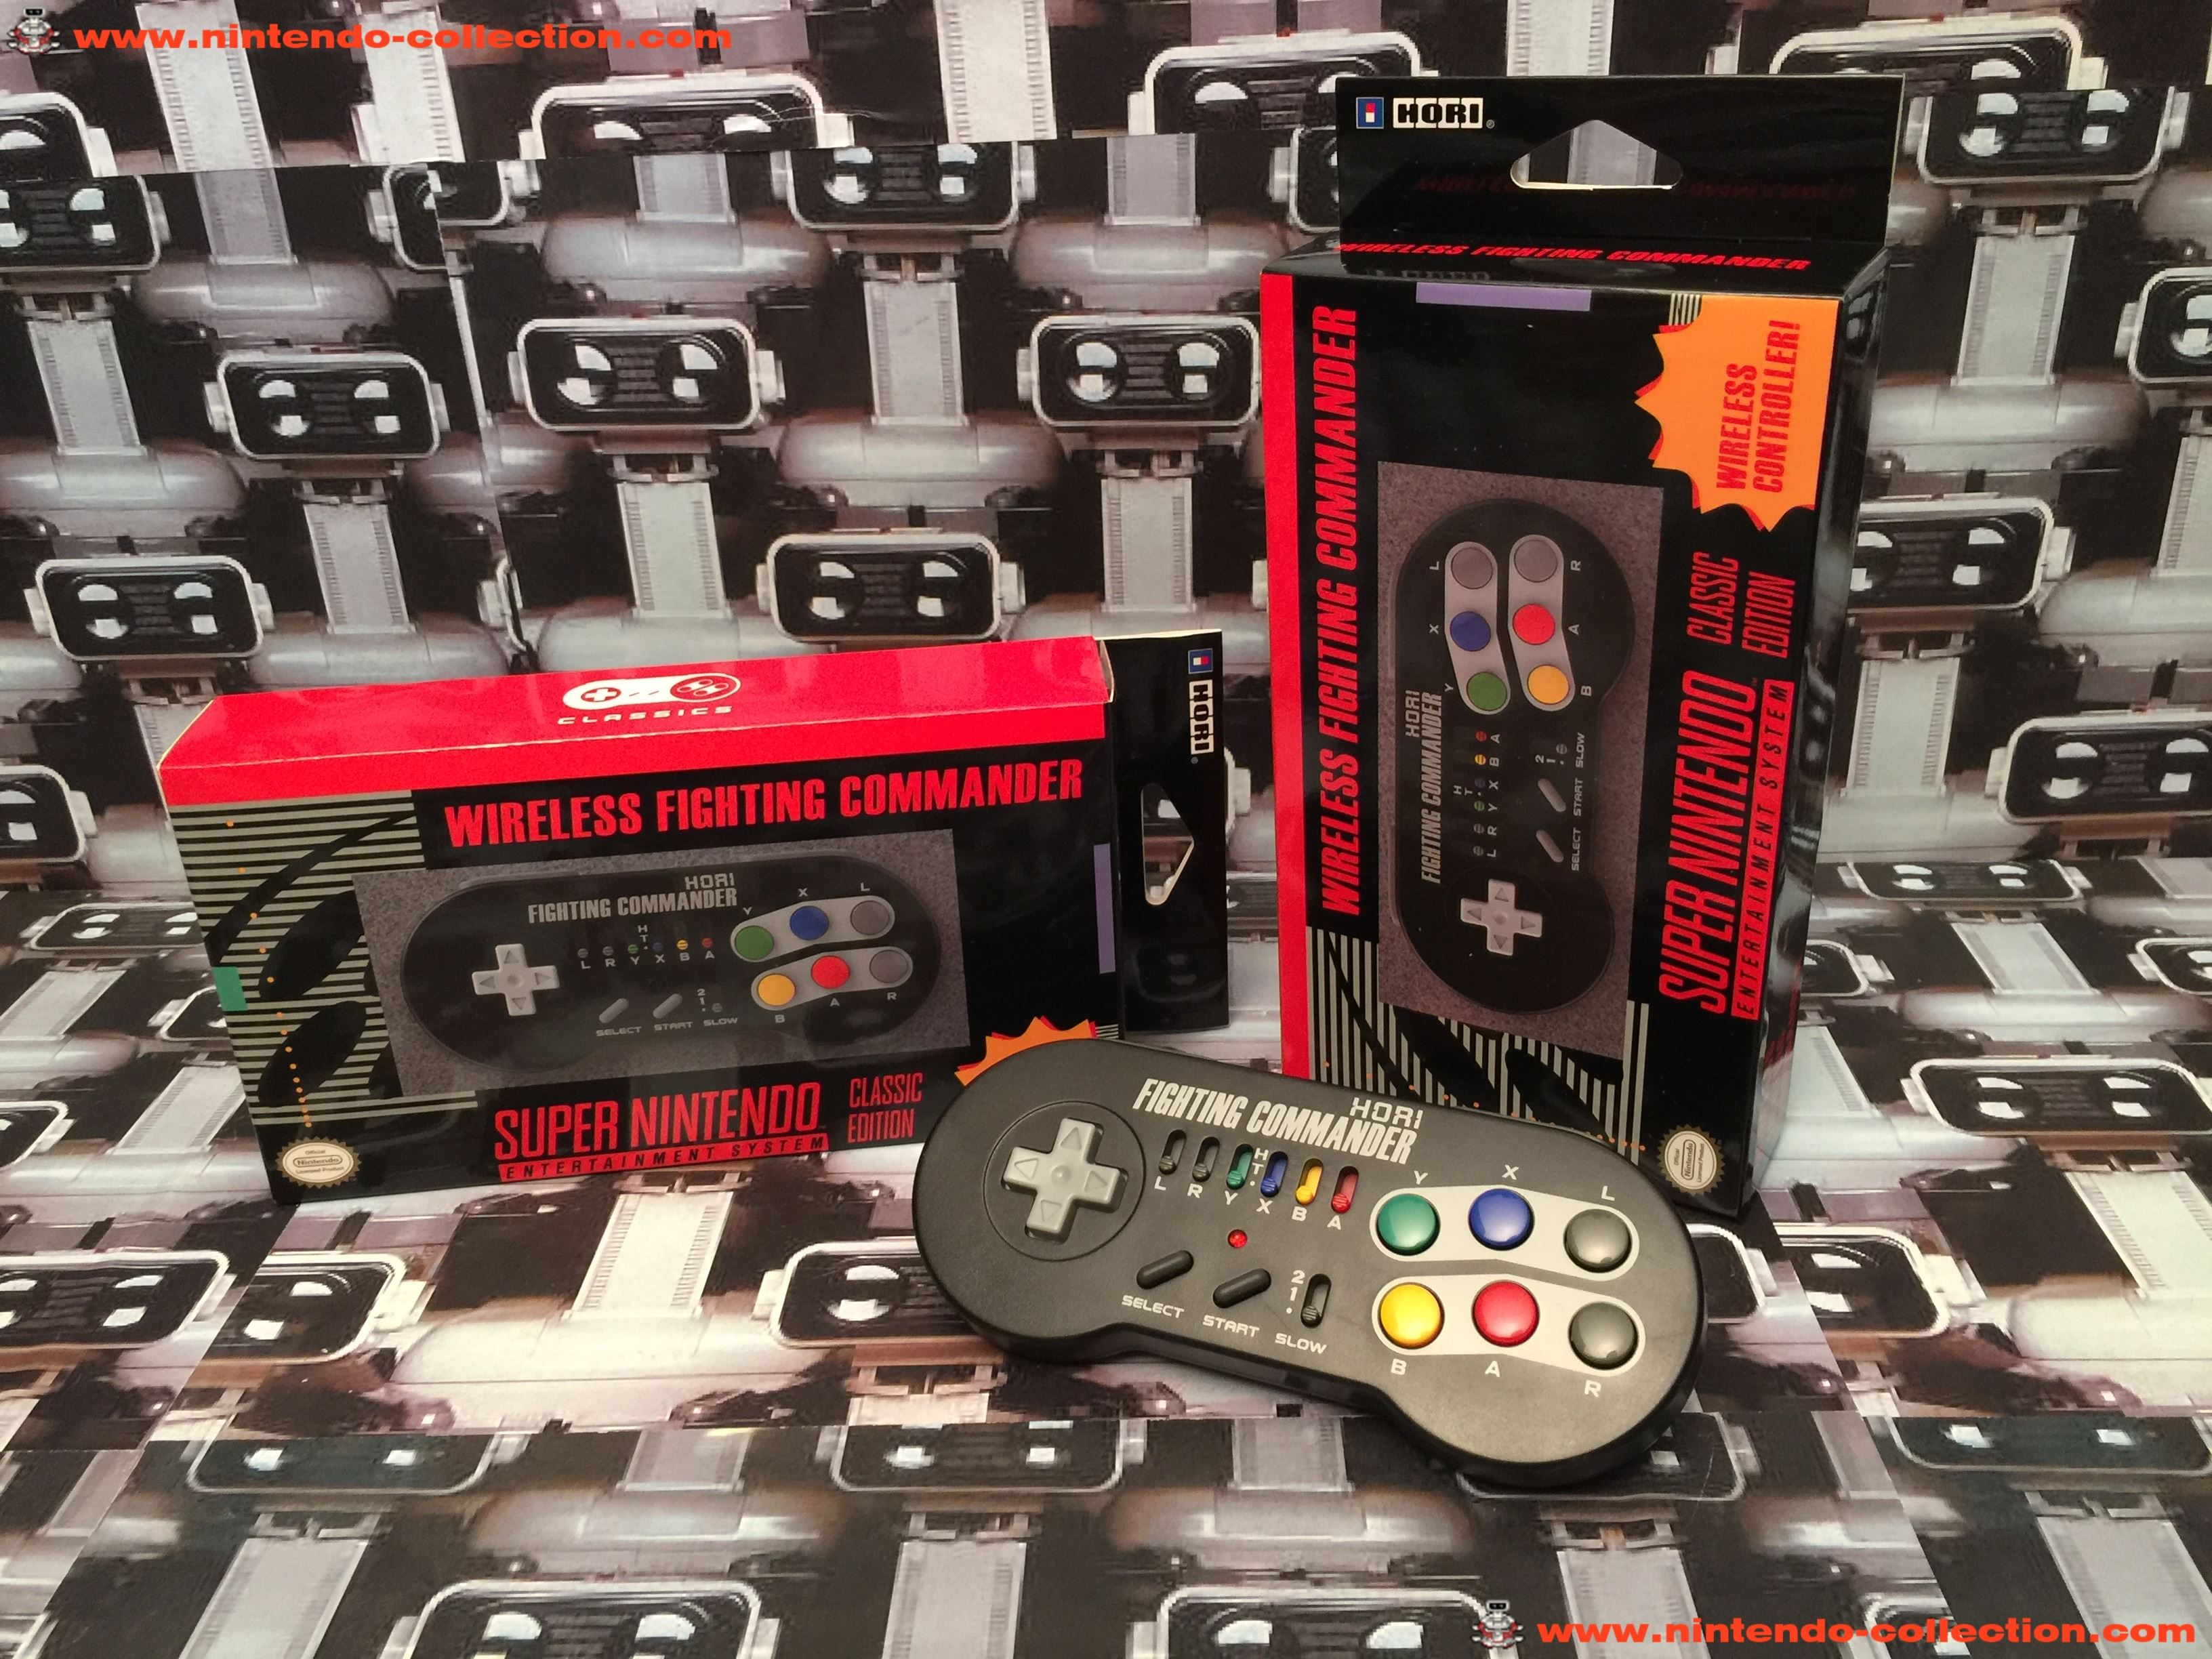 www.nintendo-collection.com - Nintendo Classic Mini Controller Manette Hori Wireless Fighting Comman